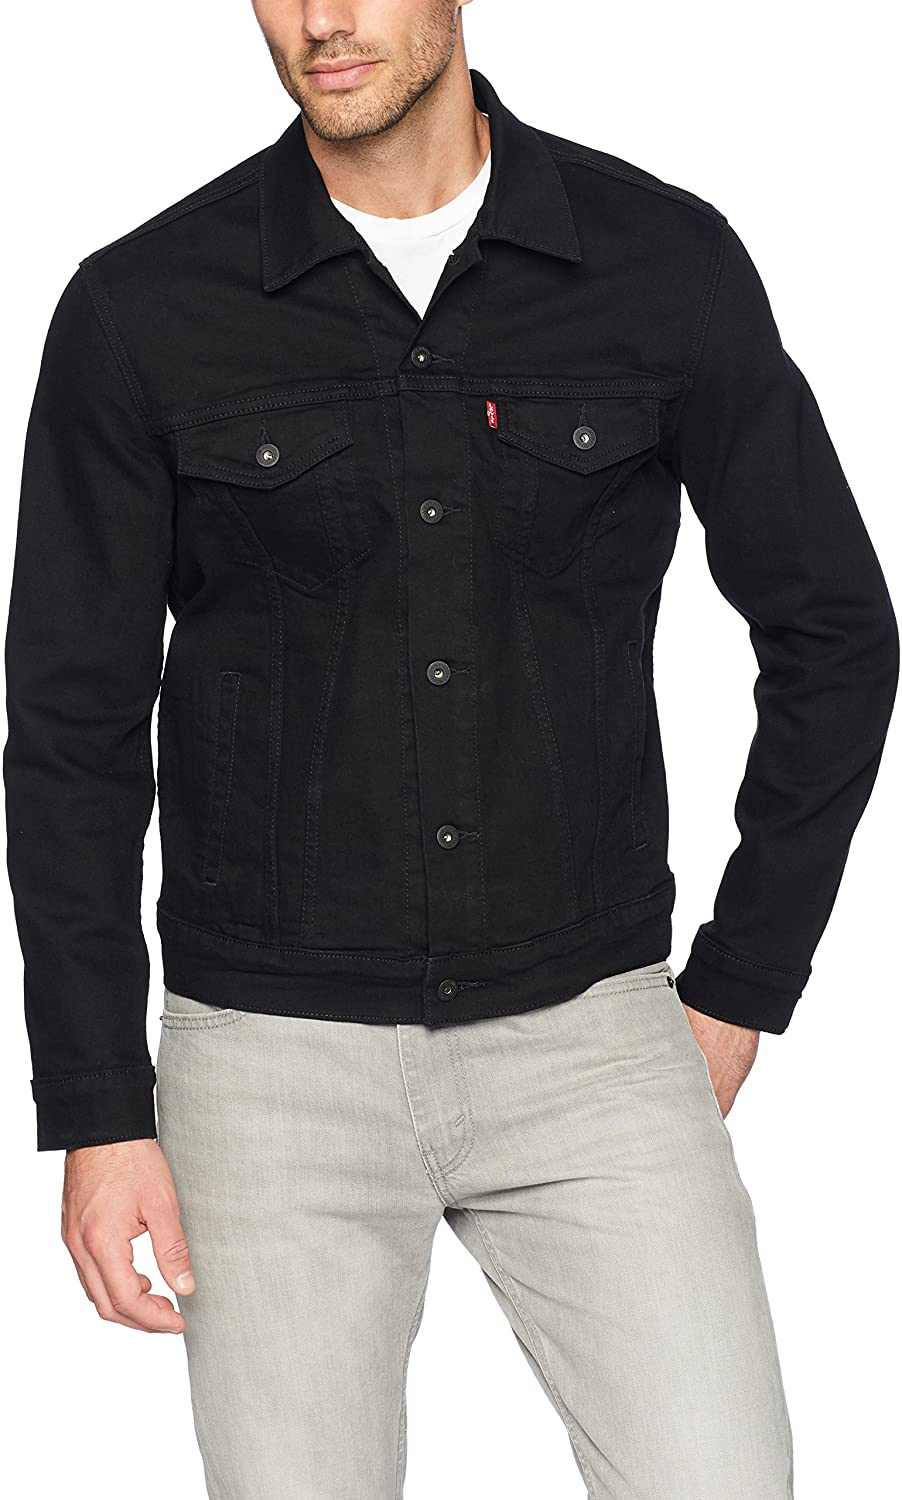 A person standing posing for the camera weraing a black trucker jacket